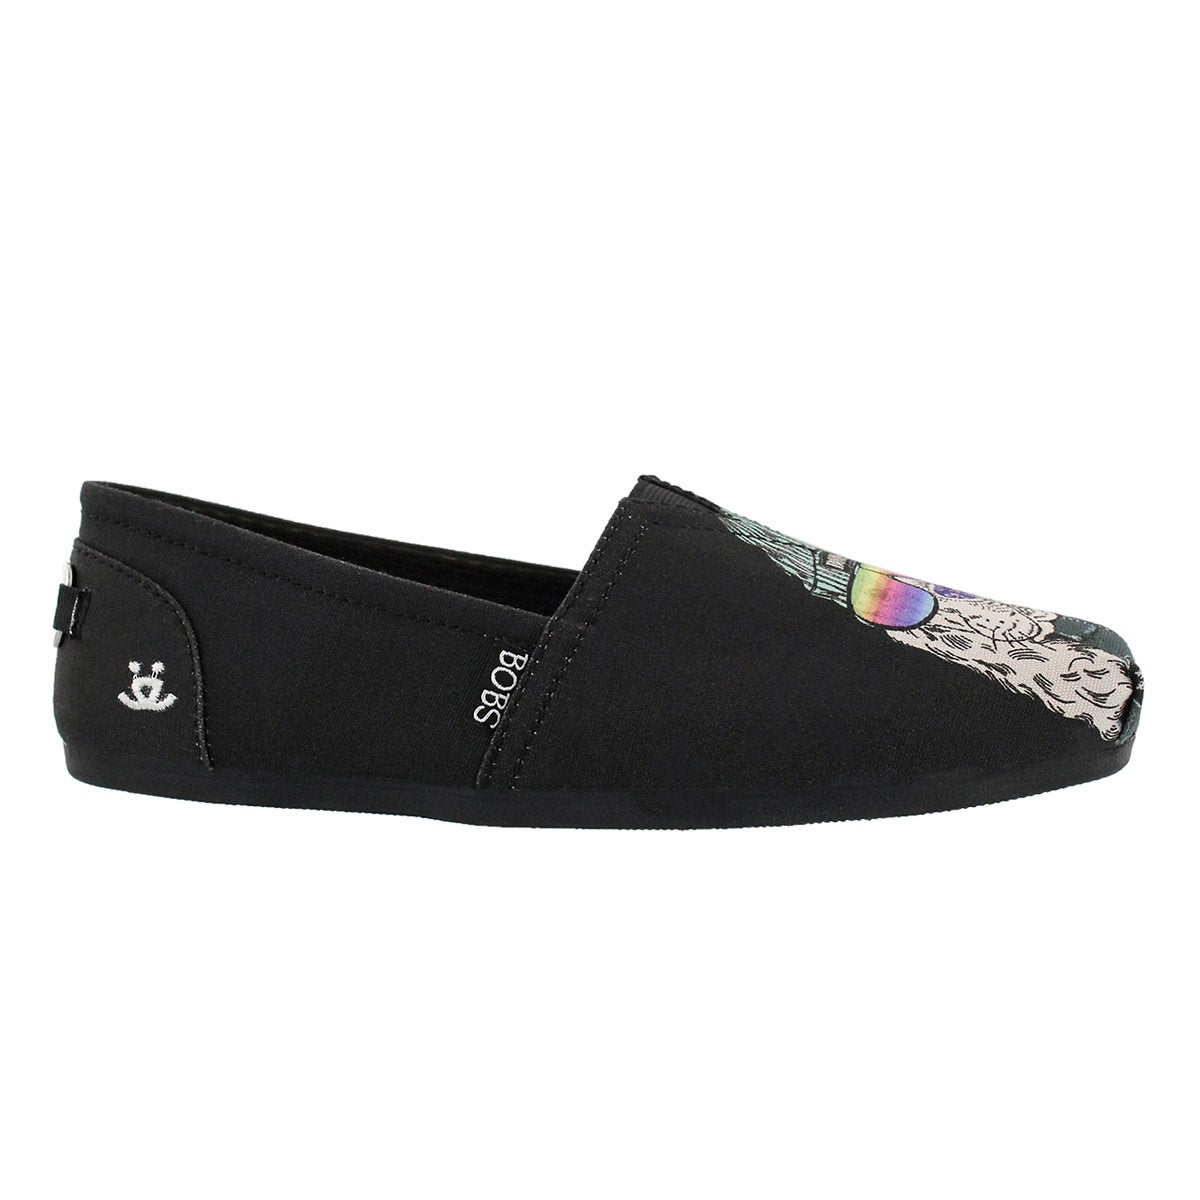 Lds Bobs Plush Outpaws black pug slip on